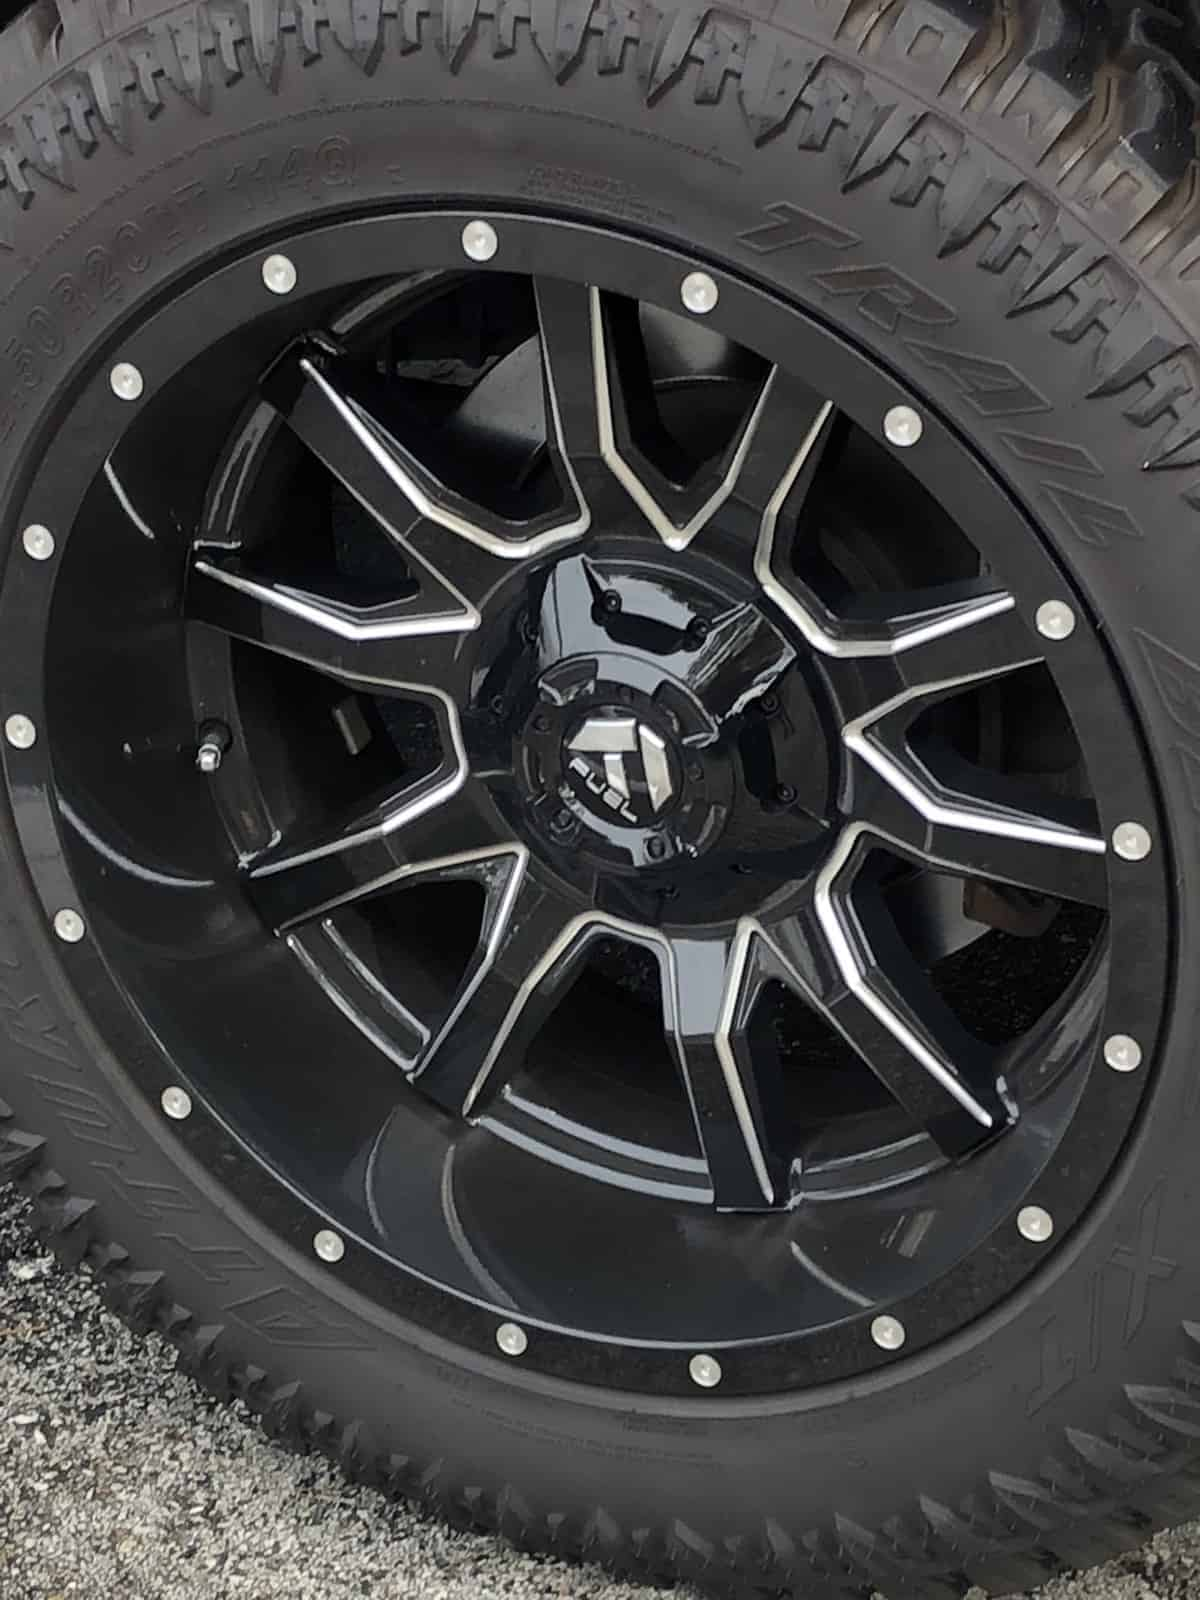 Do Jeep Wheels Fit a Ford?